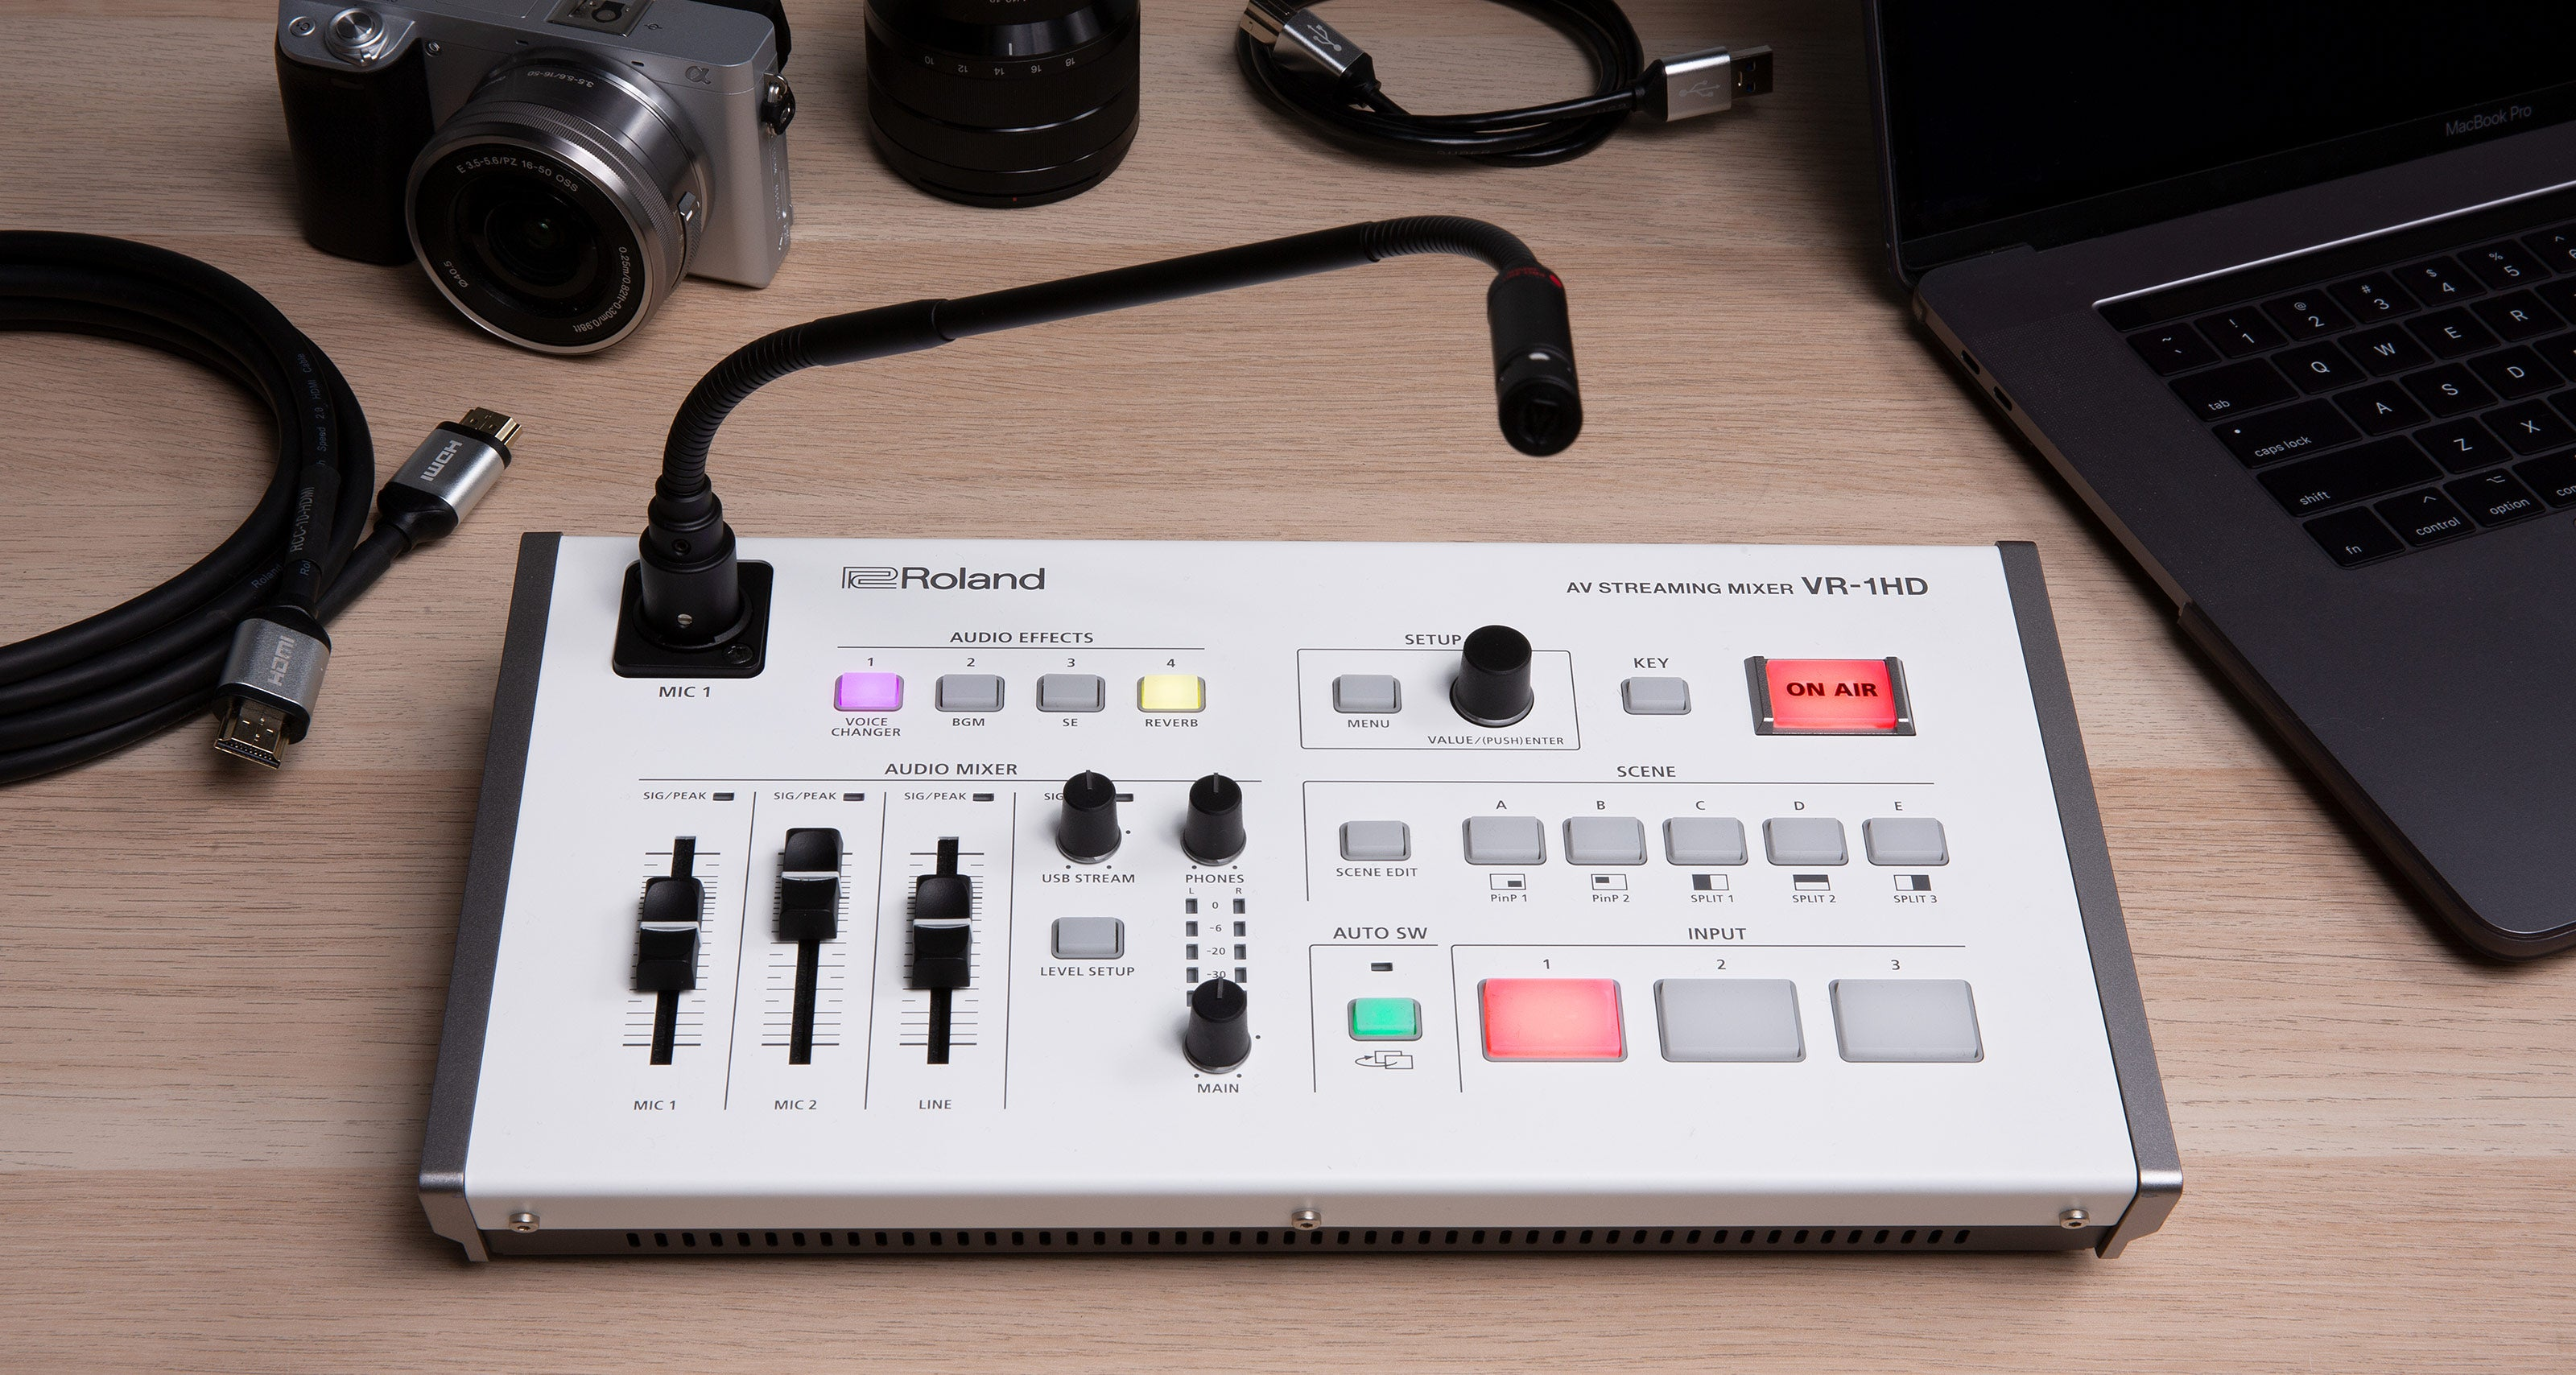 ROLAND'S VR-1HD AV STREAMING MIXER